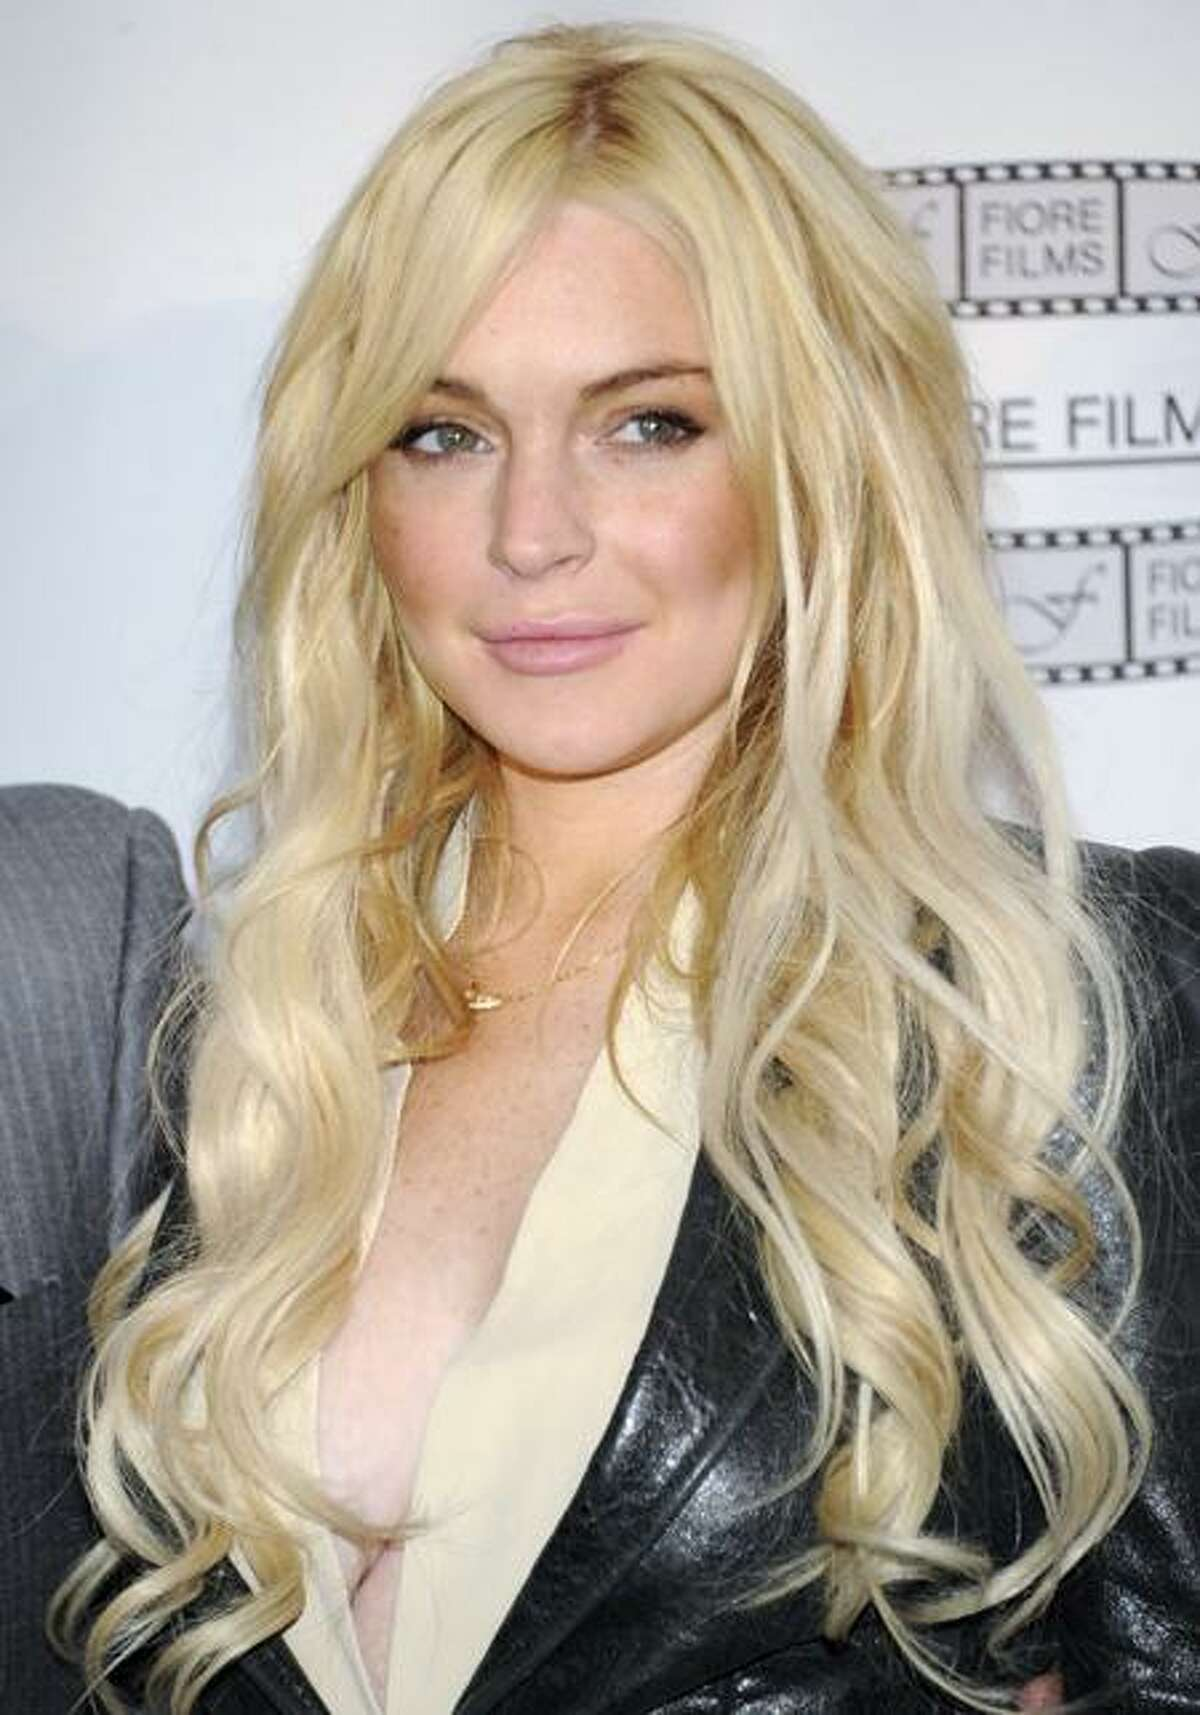 """In this April 12 file photo, actress Lindsay Lohan poses during a news conference for the film """"Gotti: Three Generations,"""" based on the life of John Gotti, in New York. Lohan is joining the big screen Gotti family as the wife of John Gotti Jr. in a biopic of one of New York's most infamous families. She told The Associated Press on Wednesday that the film is an opportunity to prove herself as an actress again. (AP Photo/Evan Agostini)"""